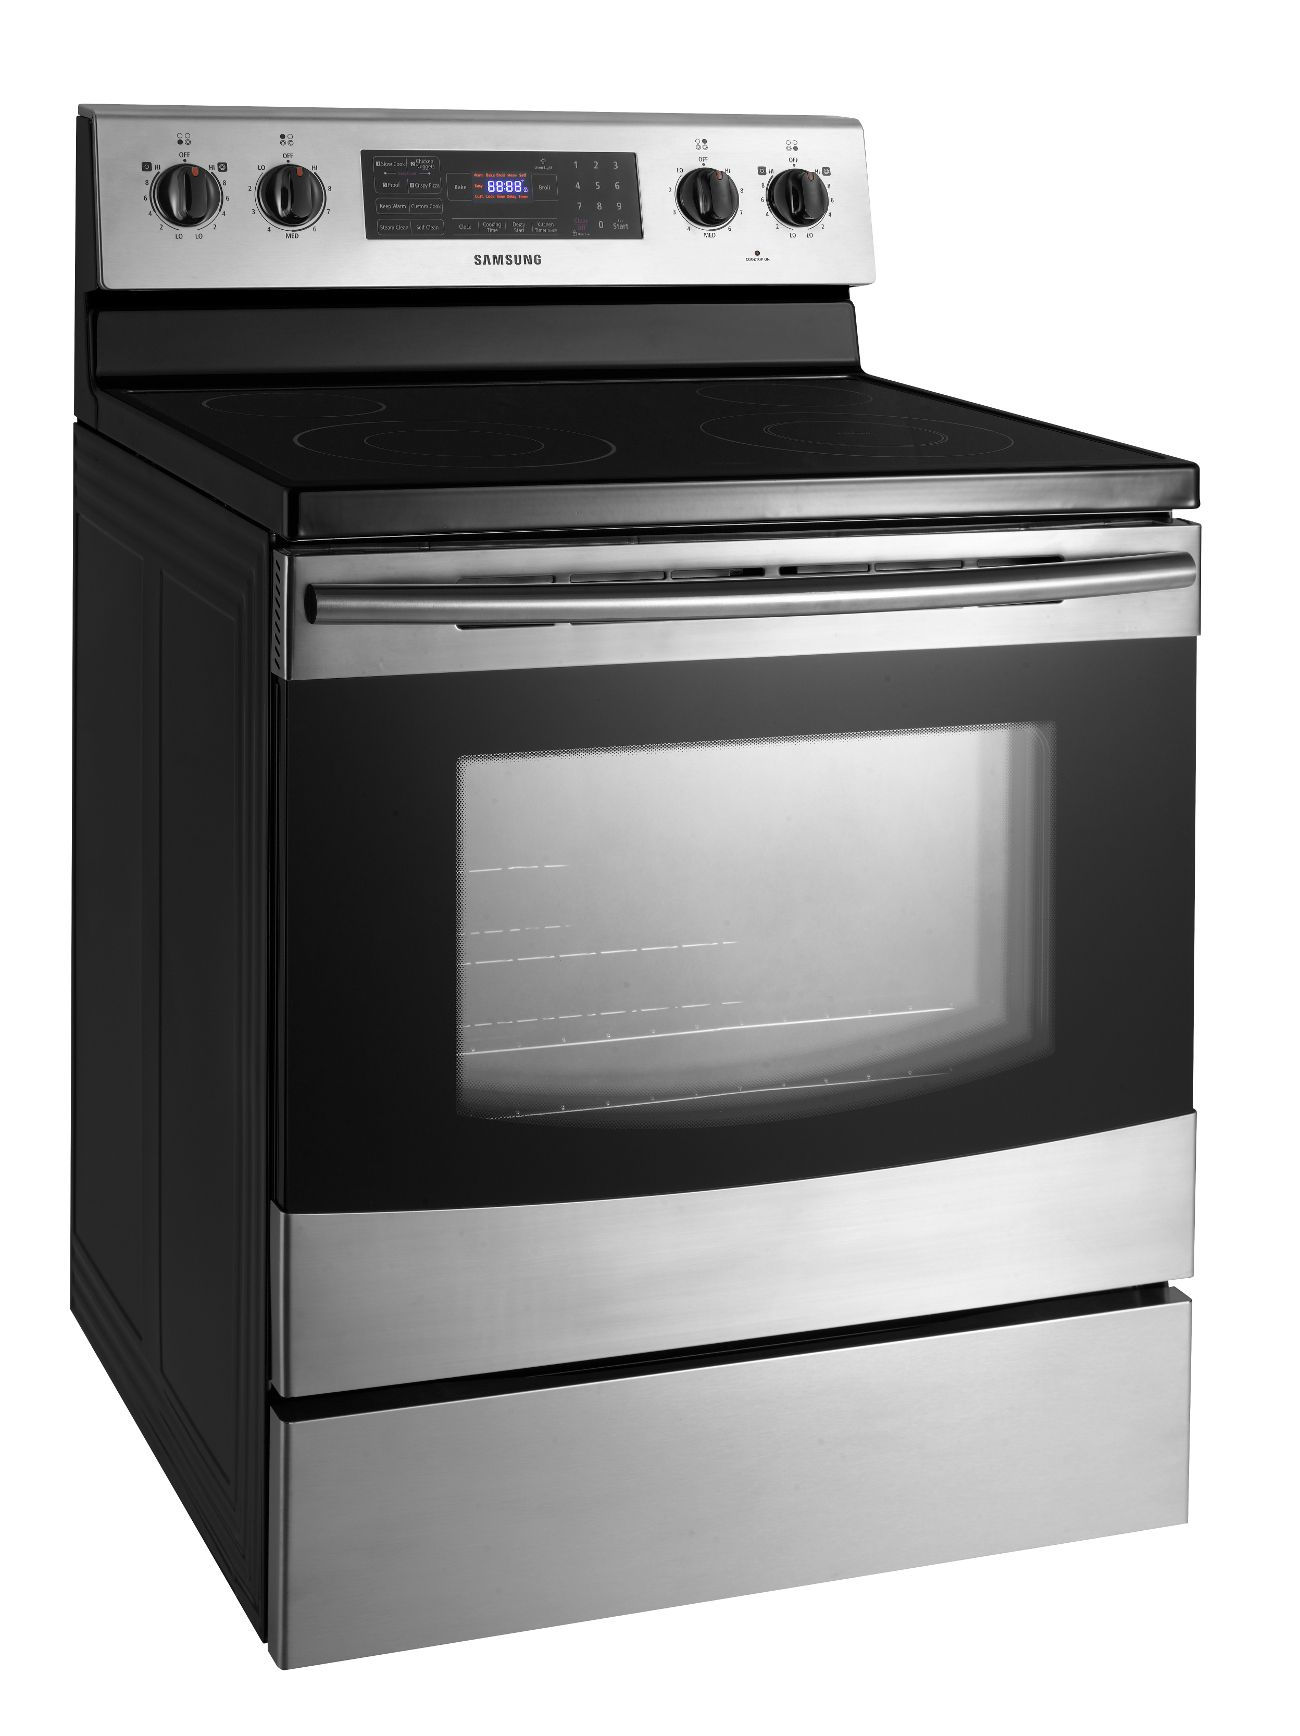 Samsung 5.9 cu. ft. Electric Range